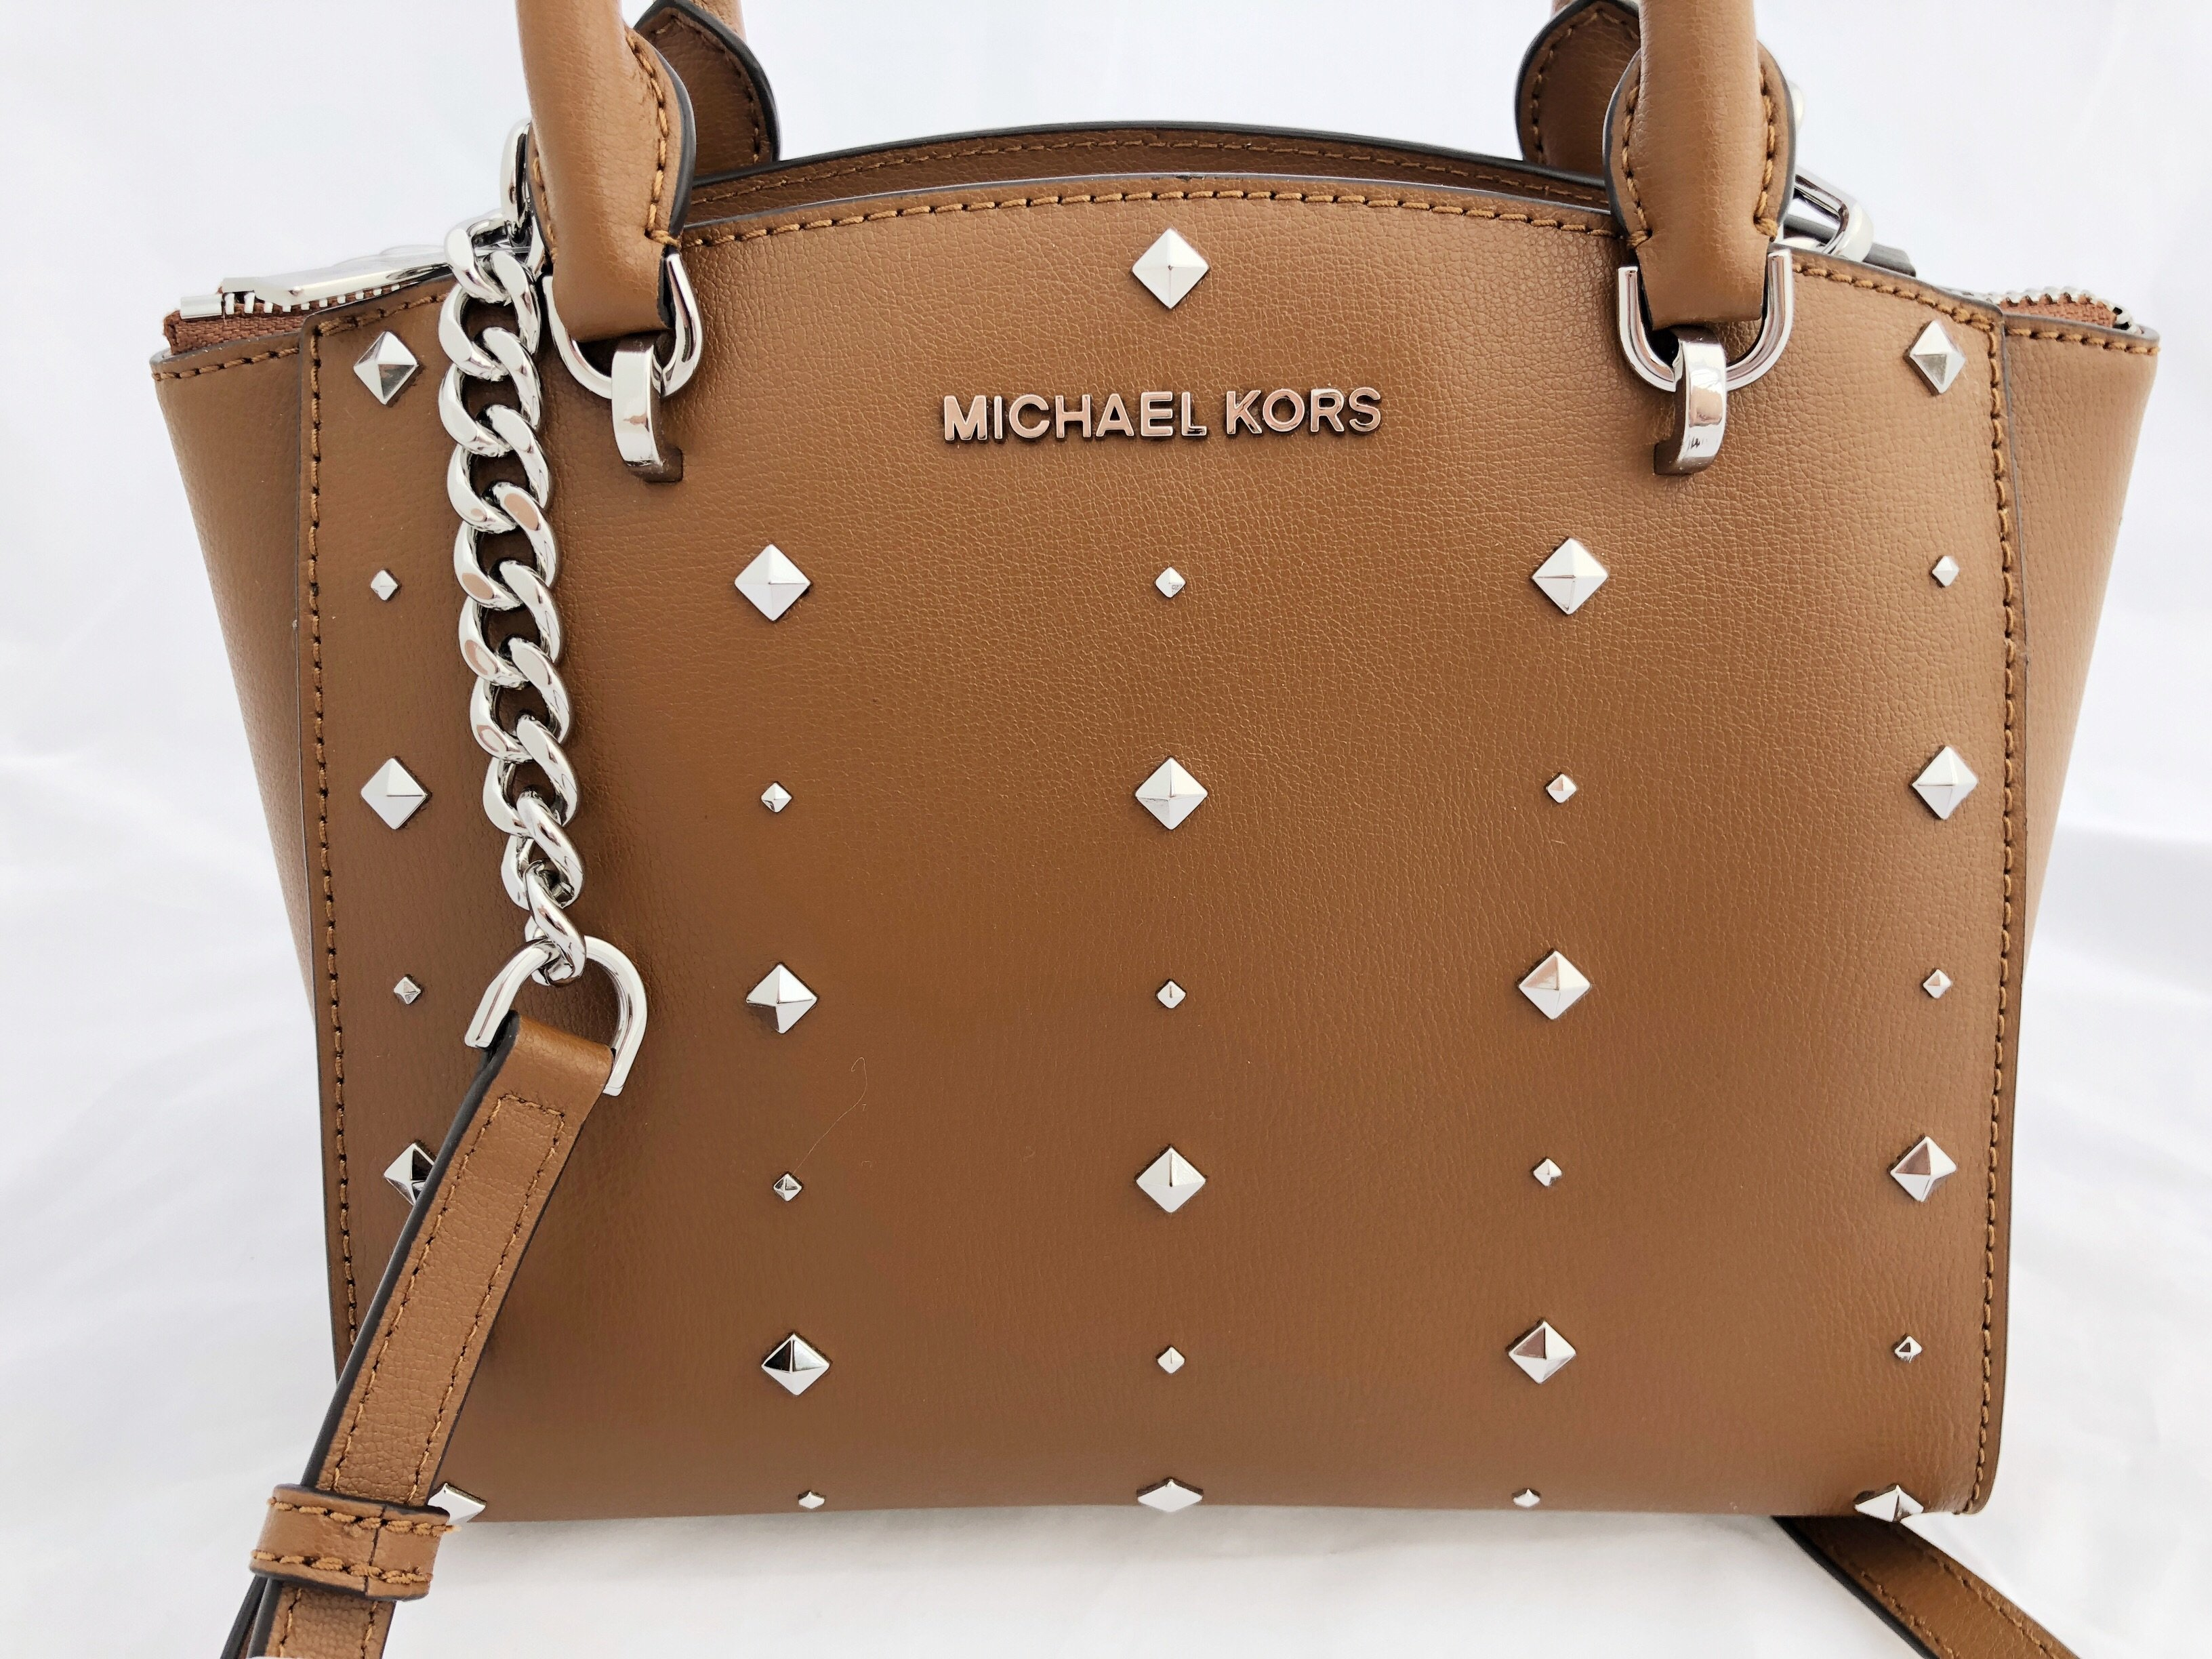 d5255d4ac6 ... spain nwt michael kors ellis small convertible satchel crossbody stud  luggage brown walmart b3b40 e24e0